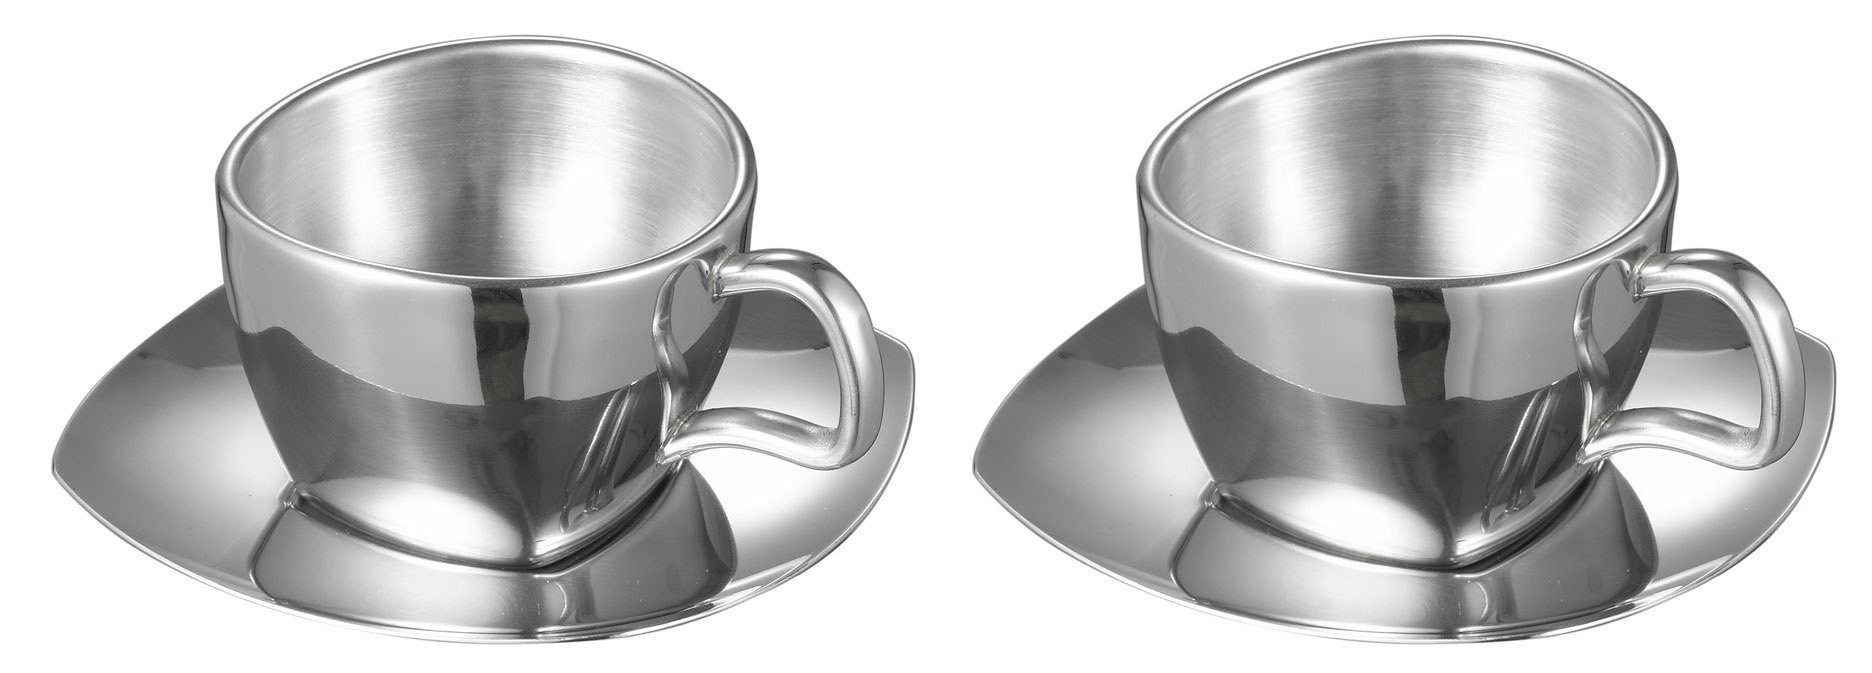 Visol Misto Stainless Steel Double Wall Cup with Saucer (2 Pack), Silver